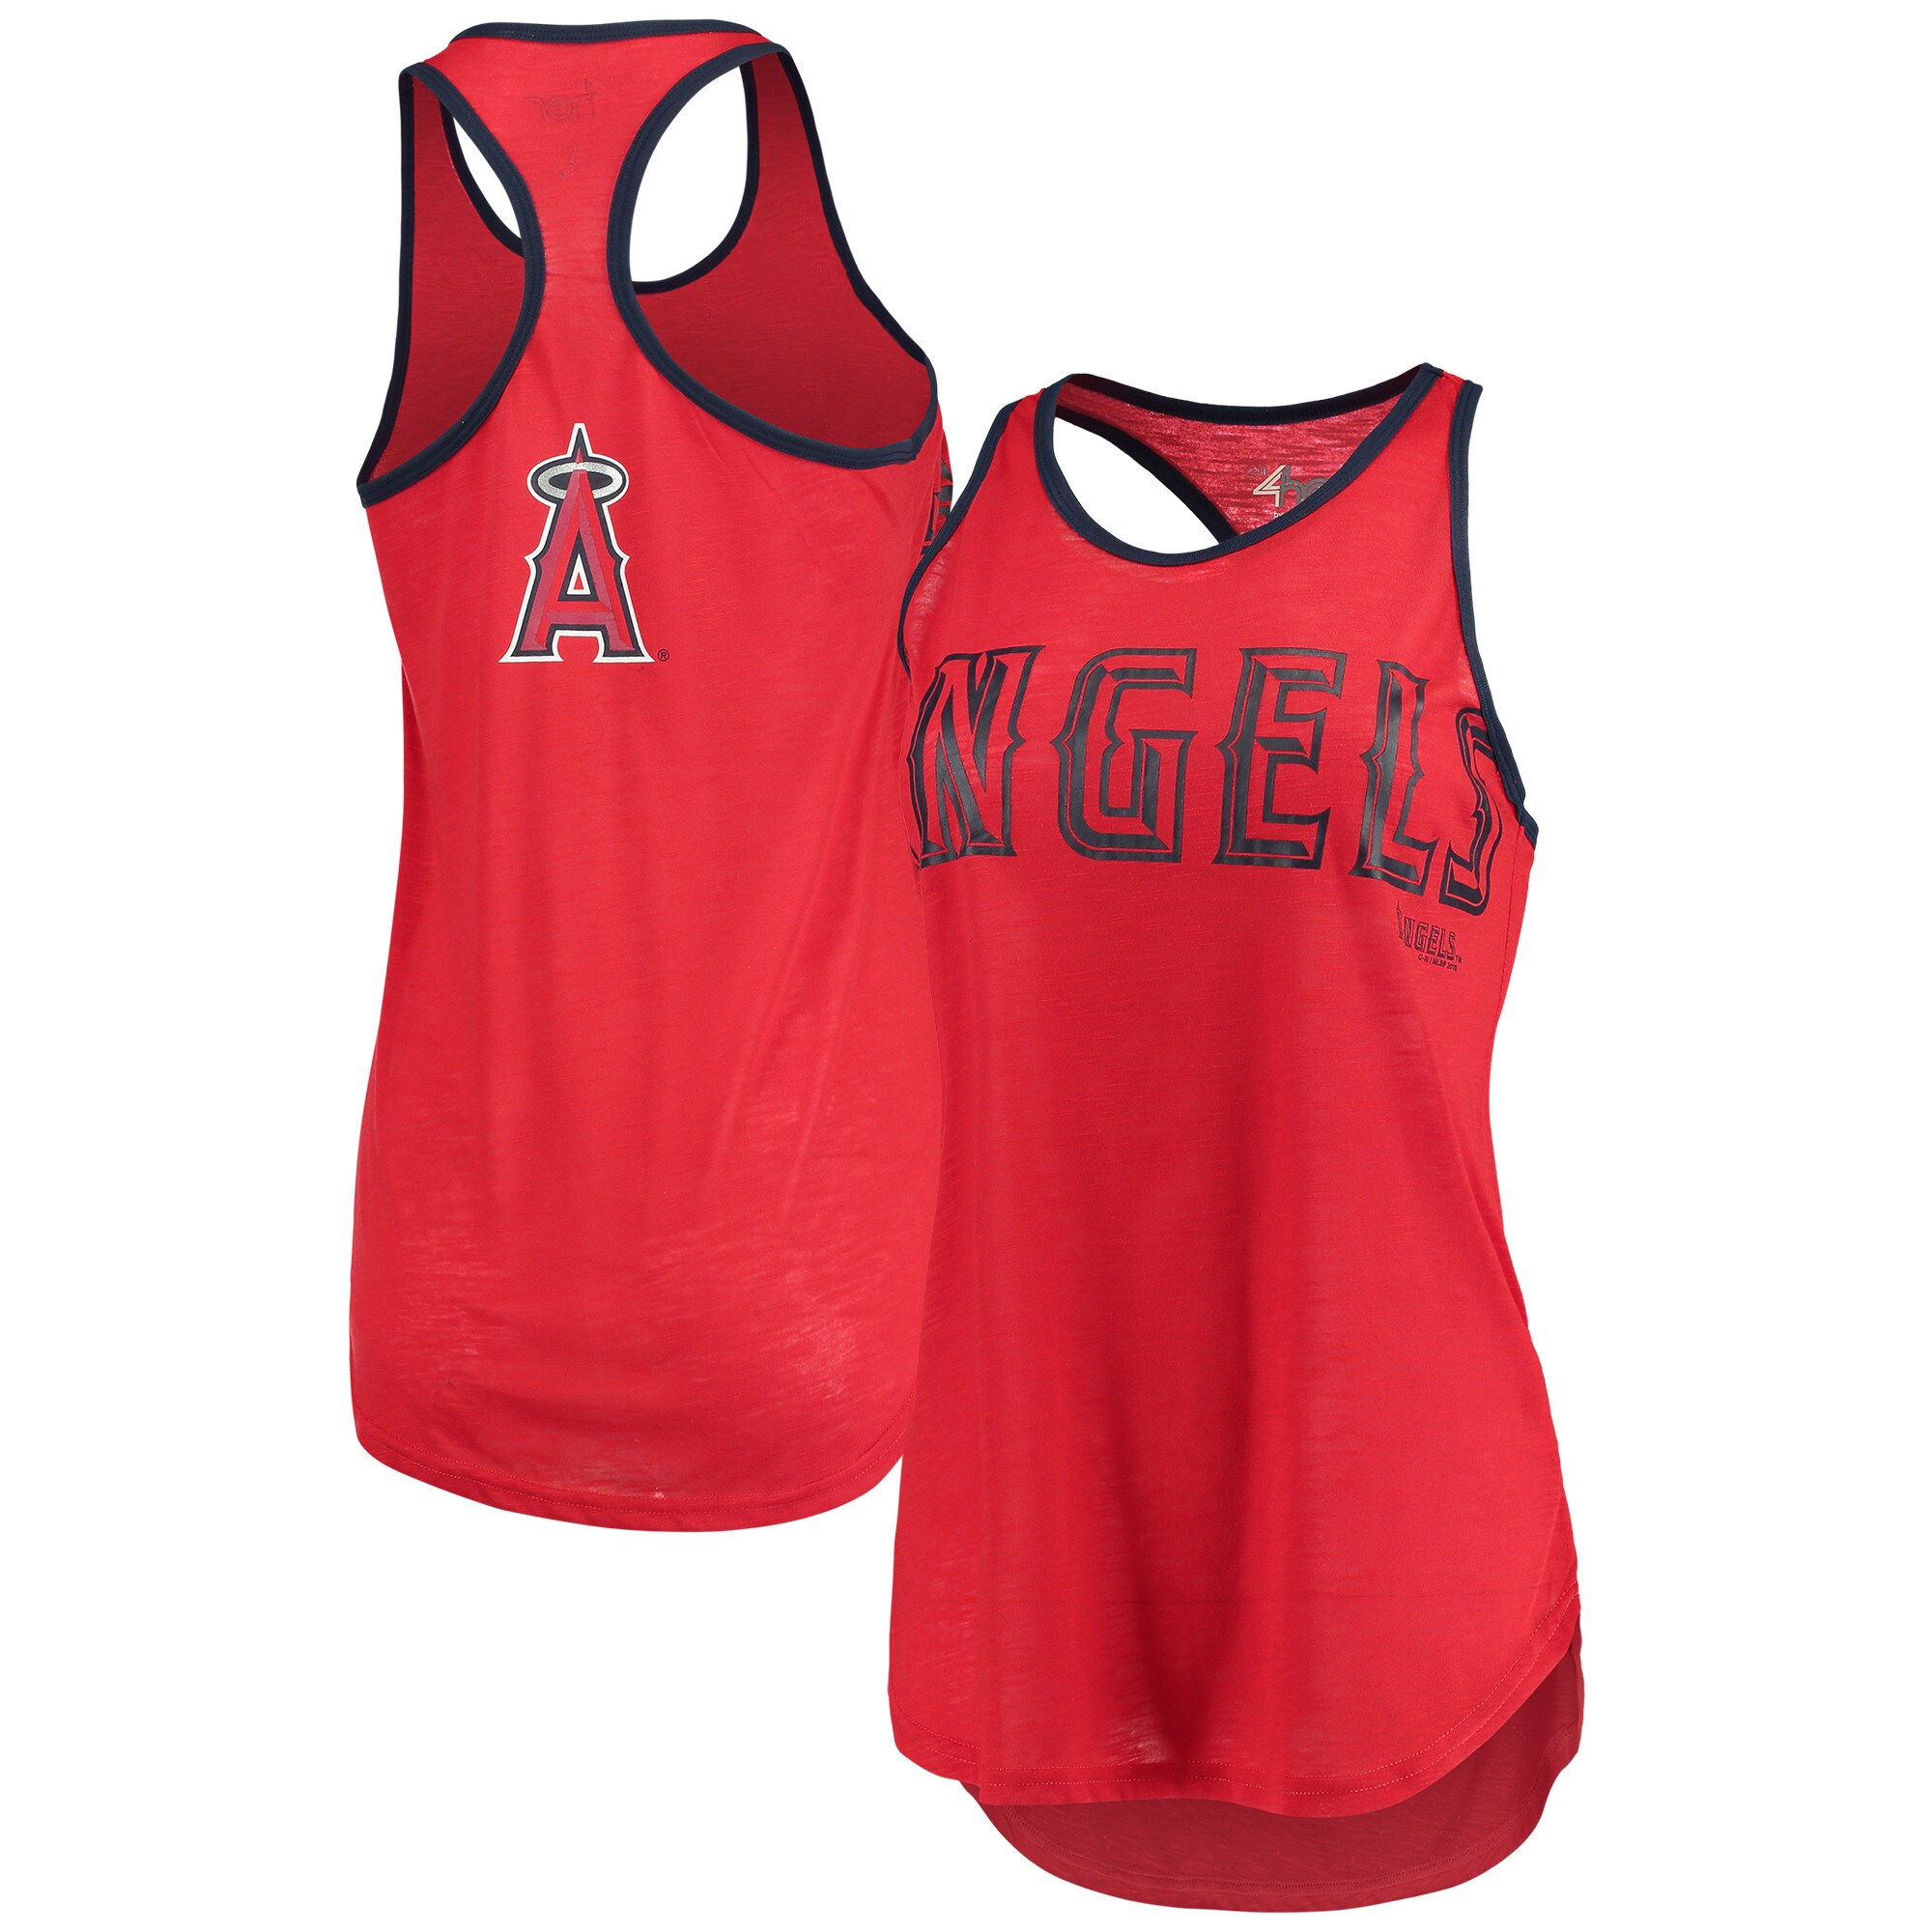 Los Angeles Angels G-III 4Her by Carl Banks Women's Game Time Tank Top - Red/Navy